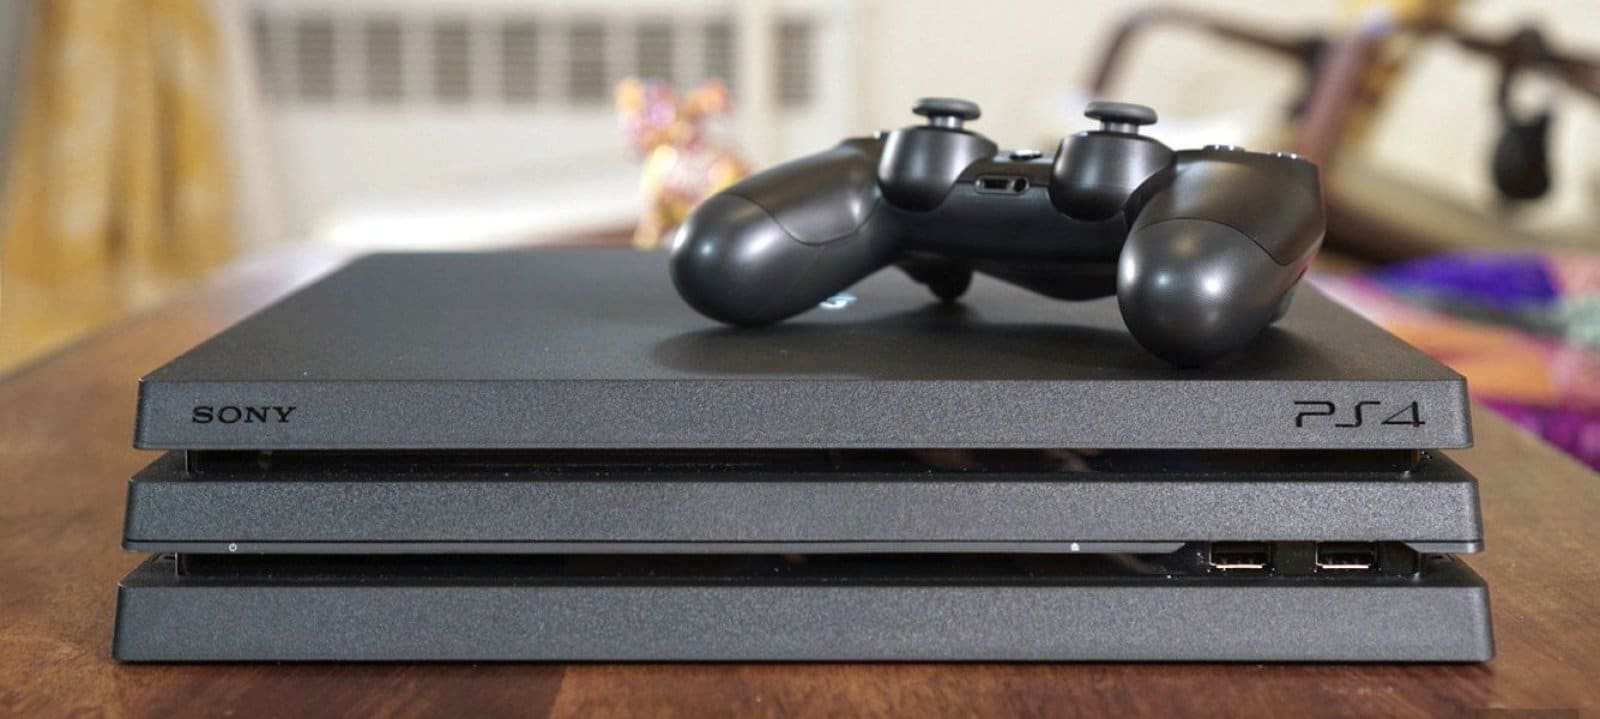 PS4 owners say malicious messages are crashing their consoles